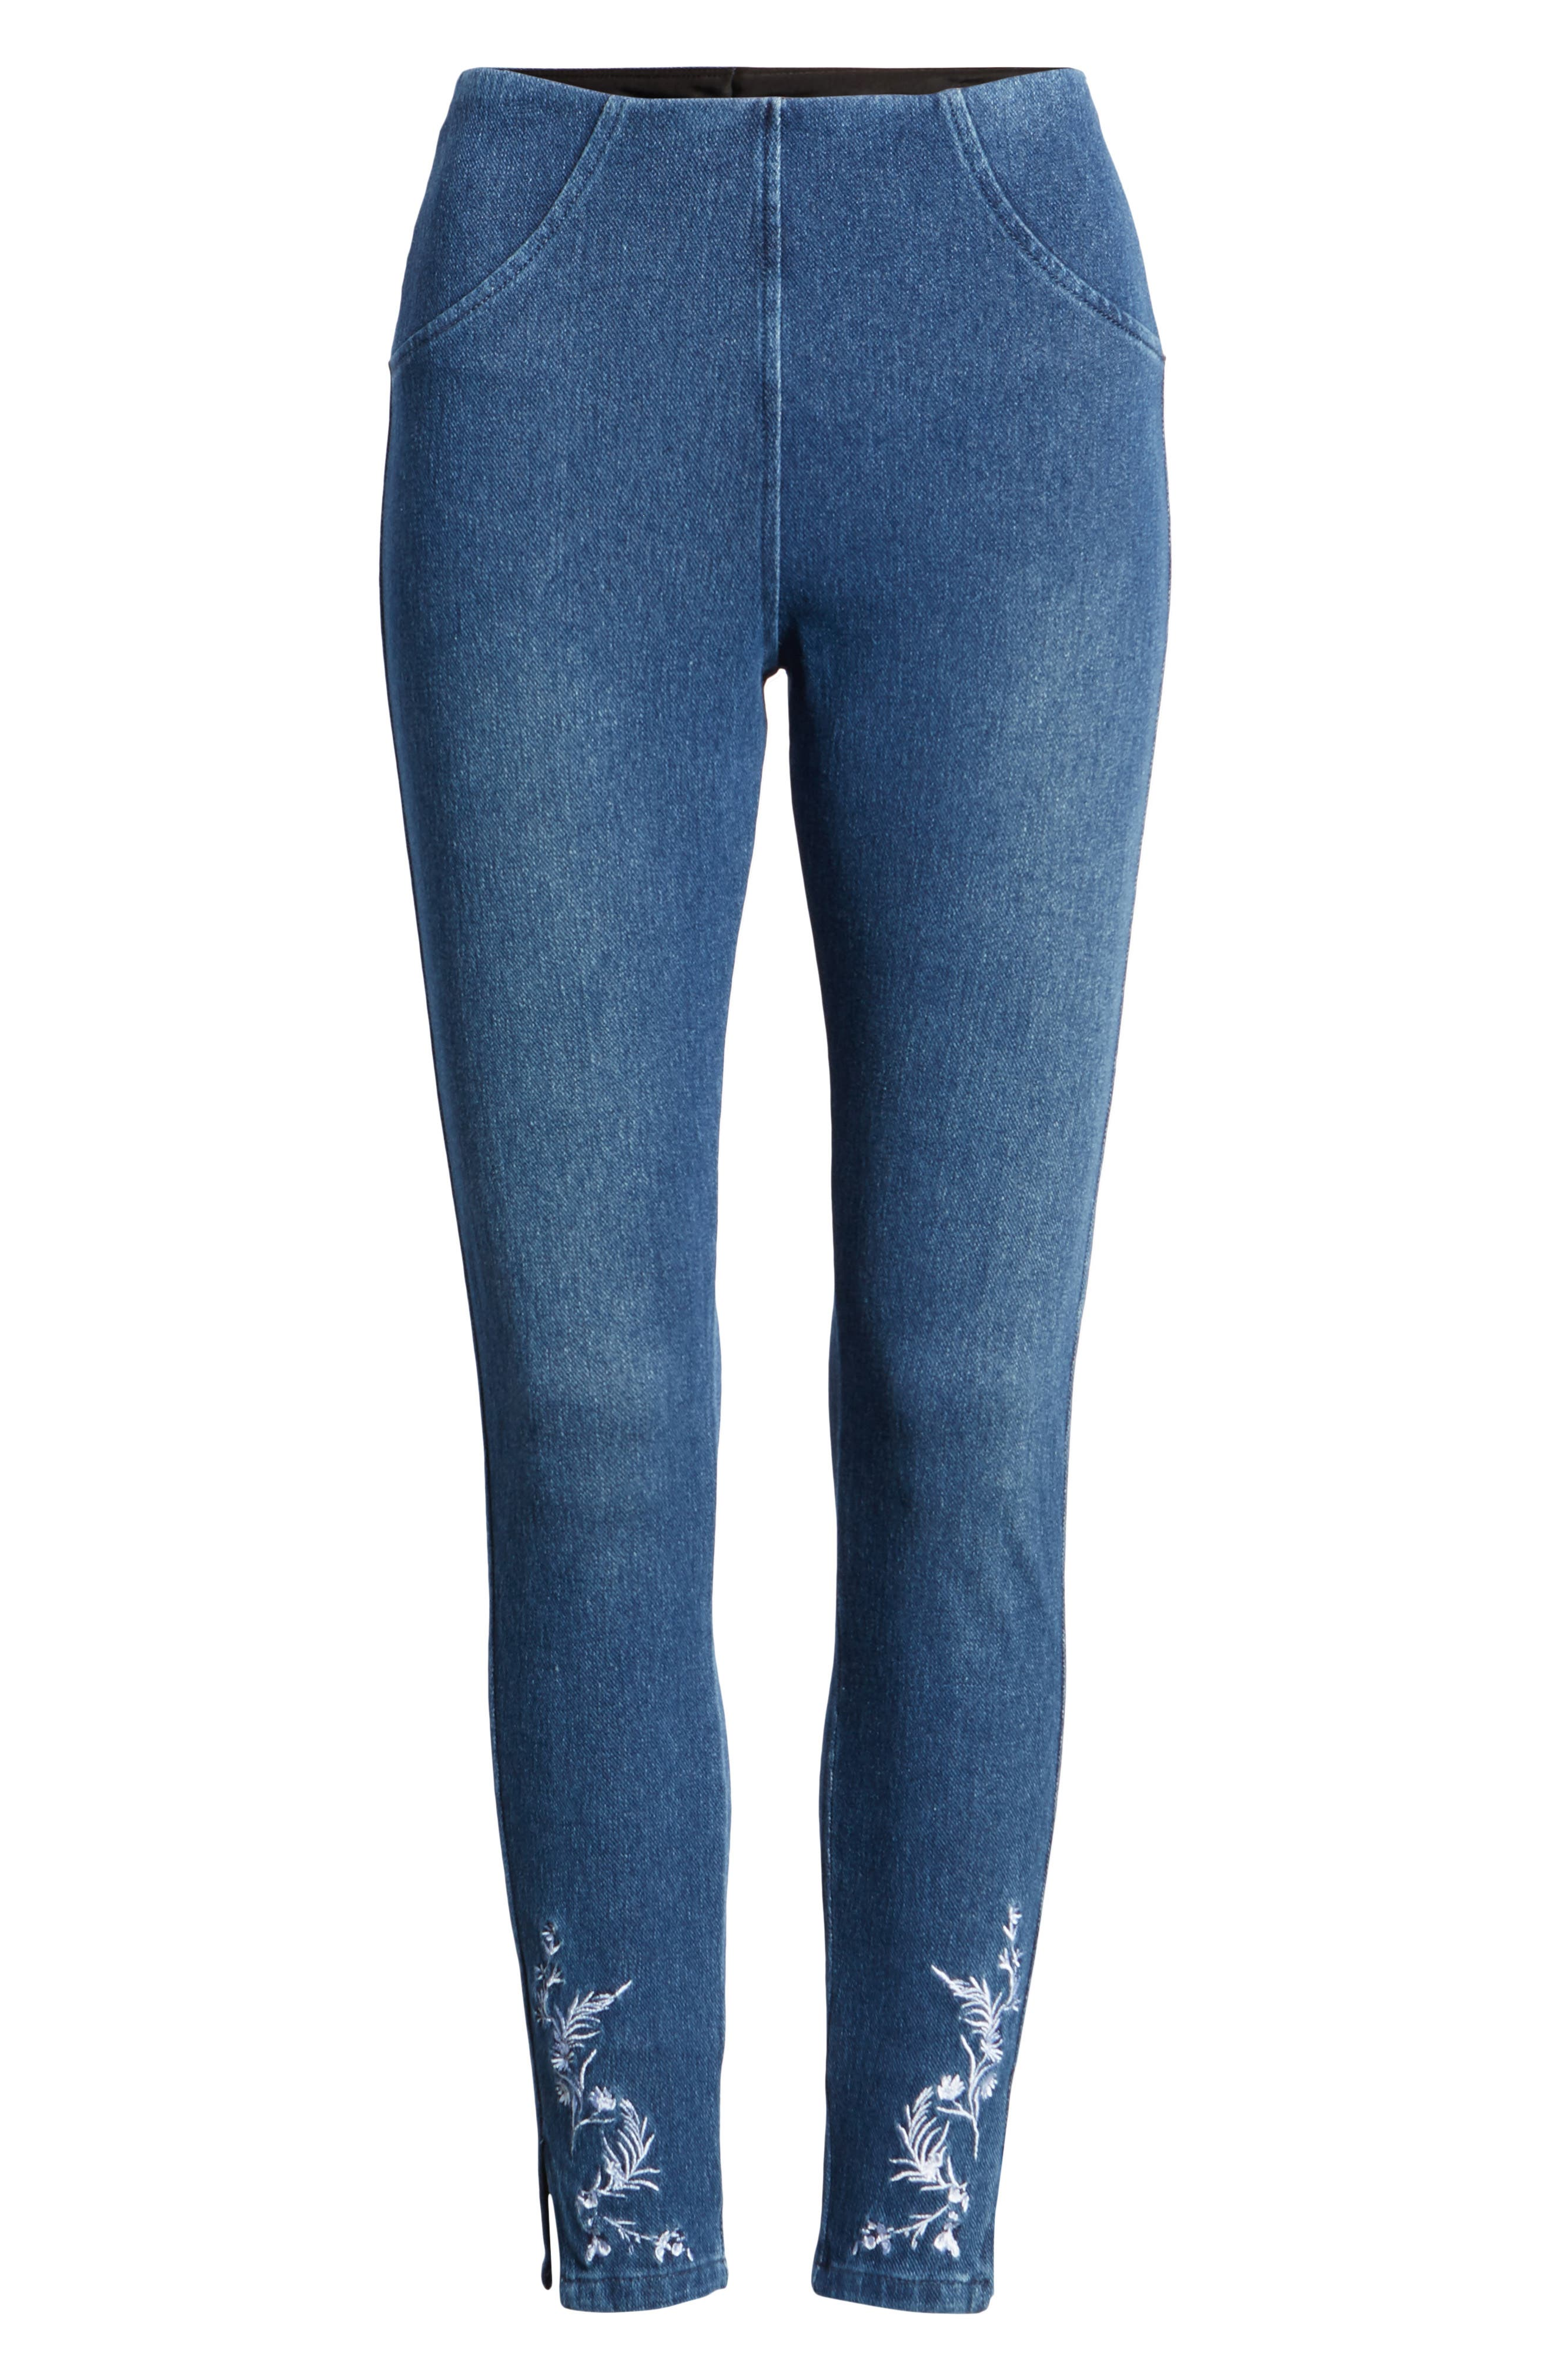 Cooper High Waist Denim Leggings,                             Alternate thumbnail 6, color,                             400